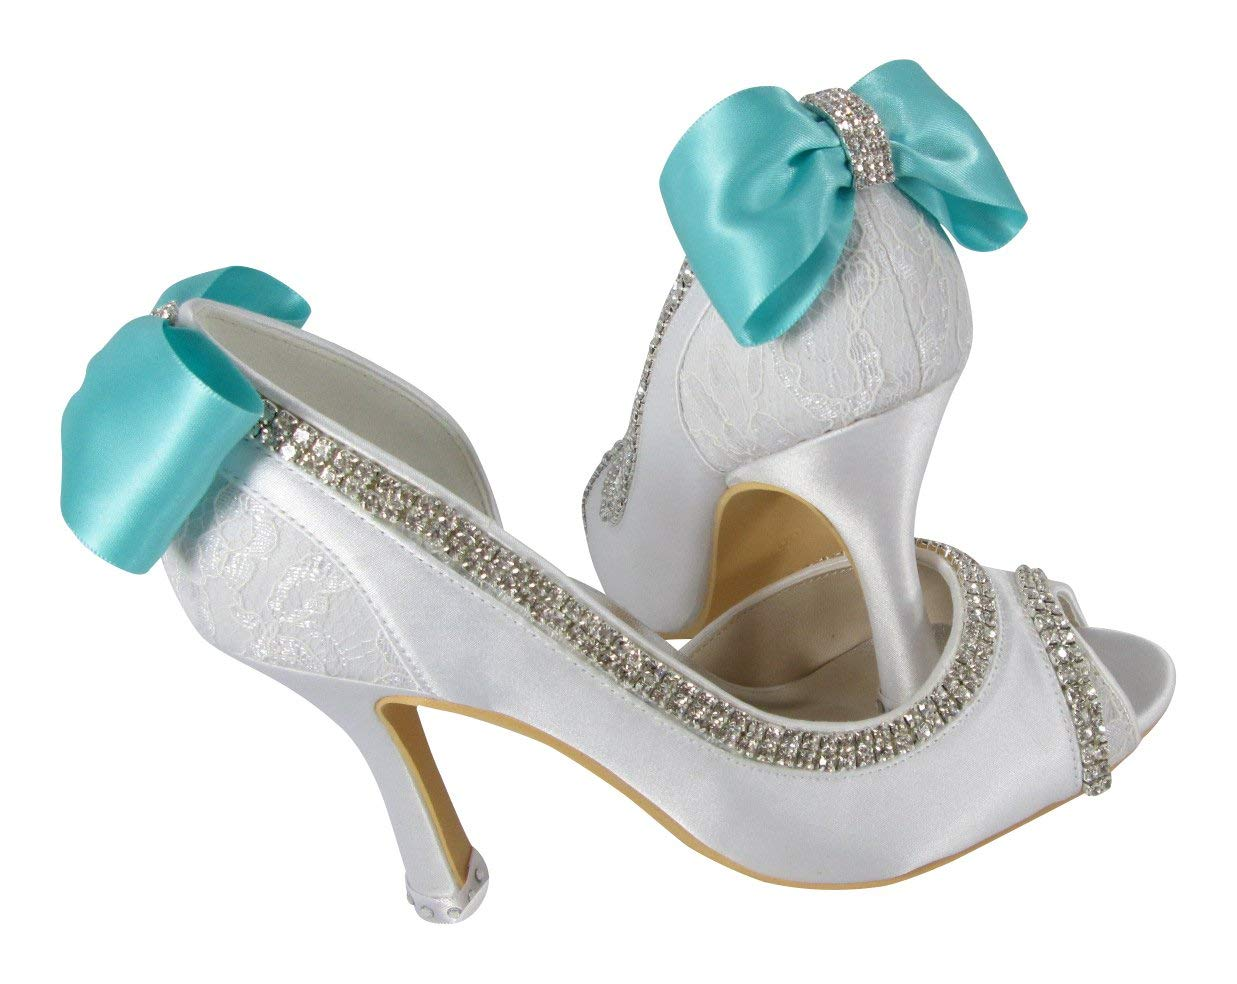 a135f724ee77 Get Quotations · Gift Box Ivory Lace Wedding Shoes Peep Toe Handmade  Rhinestone Embellishment Bows 3.5 inch high heels